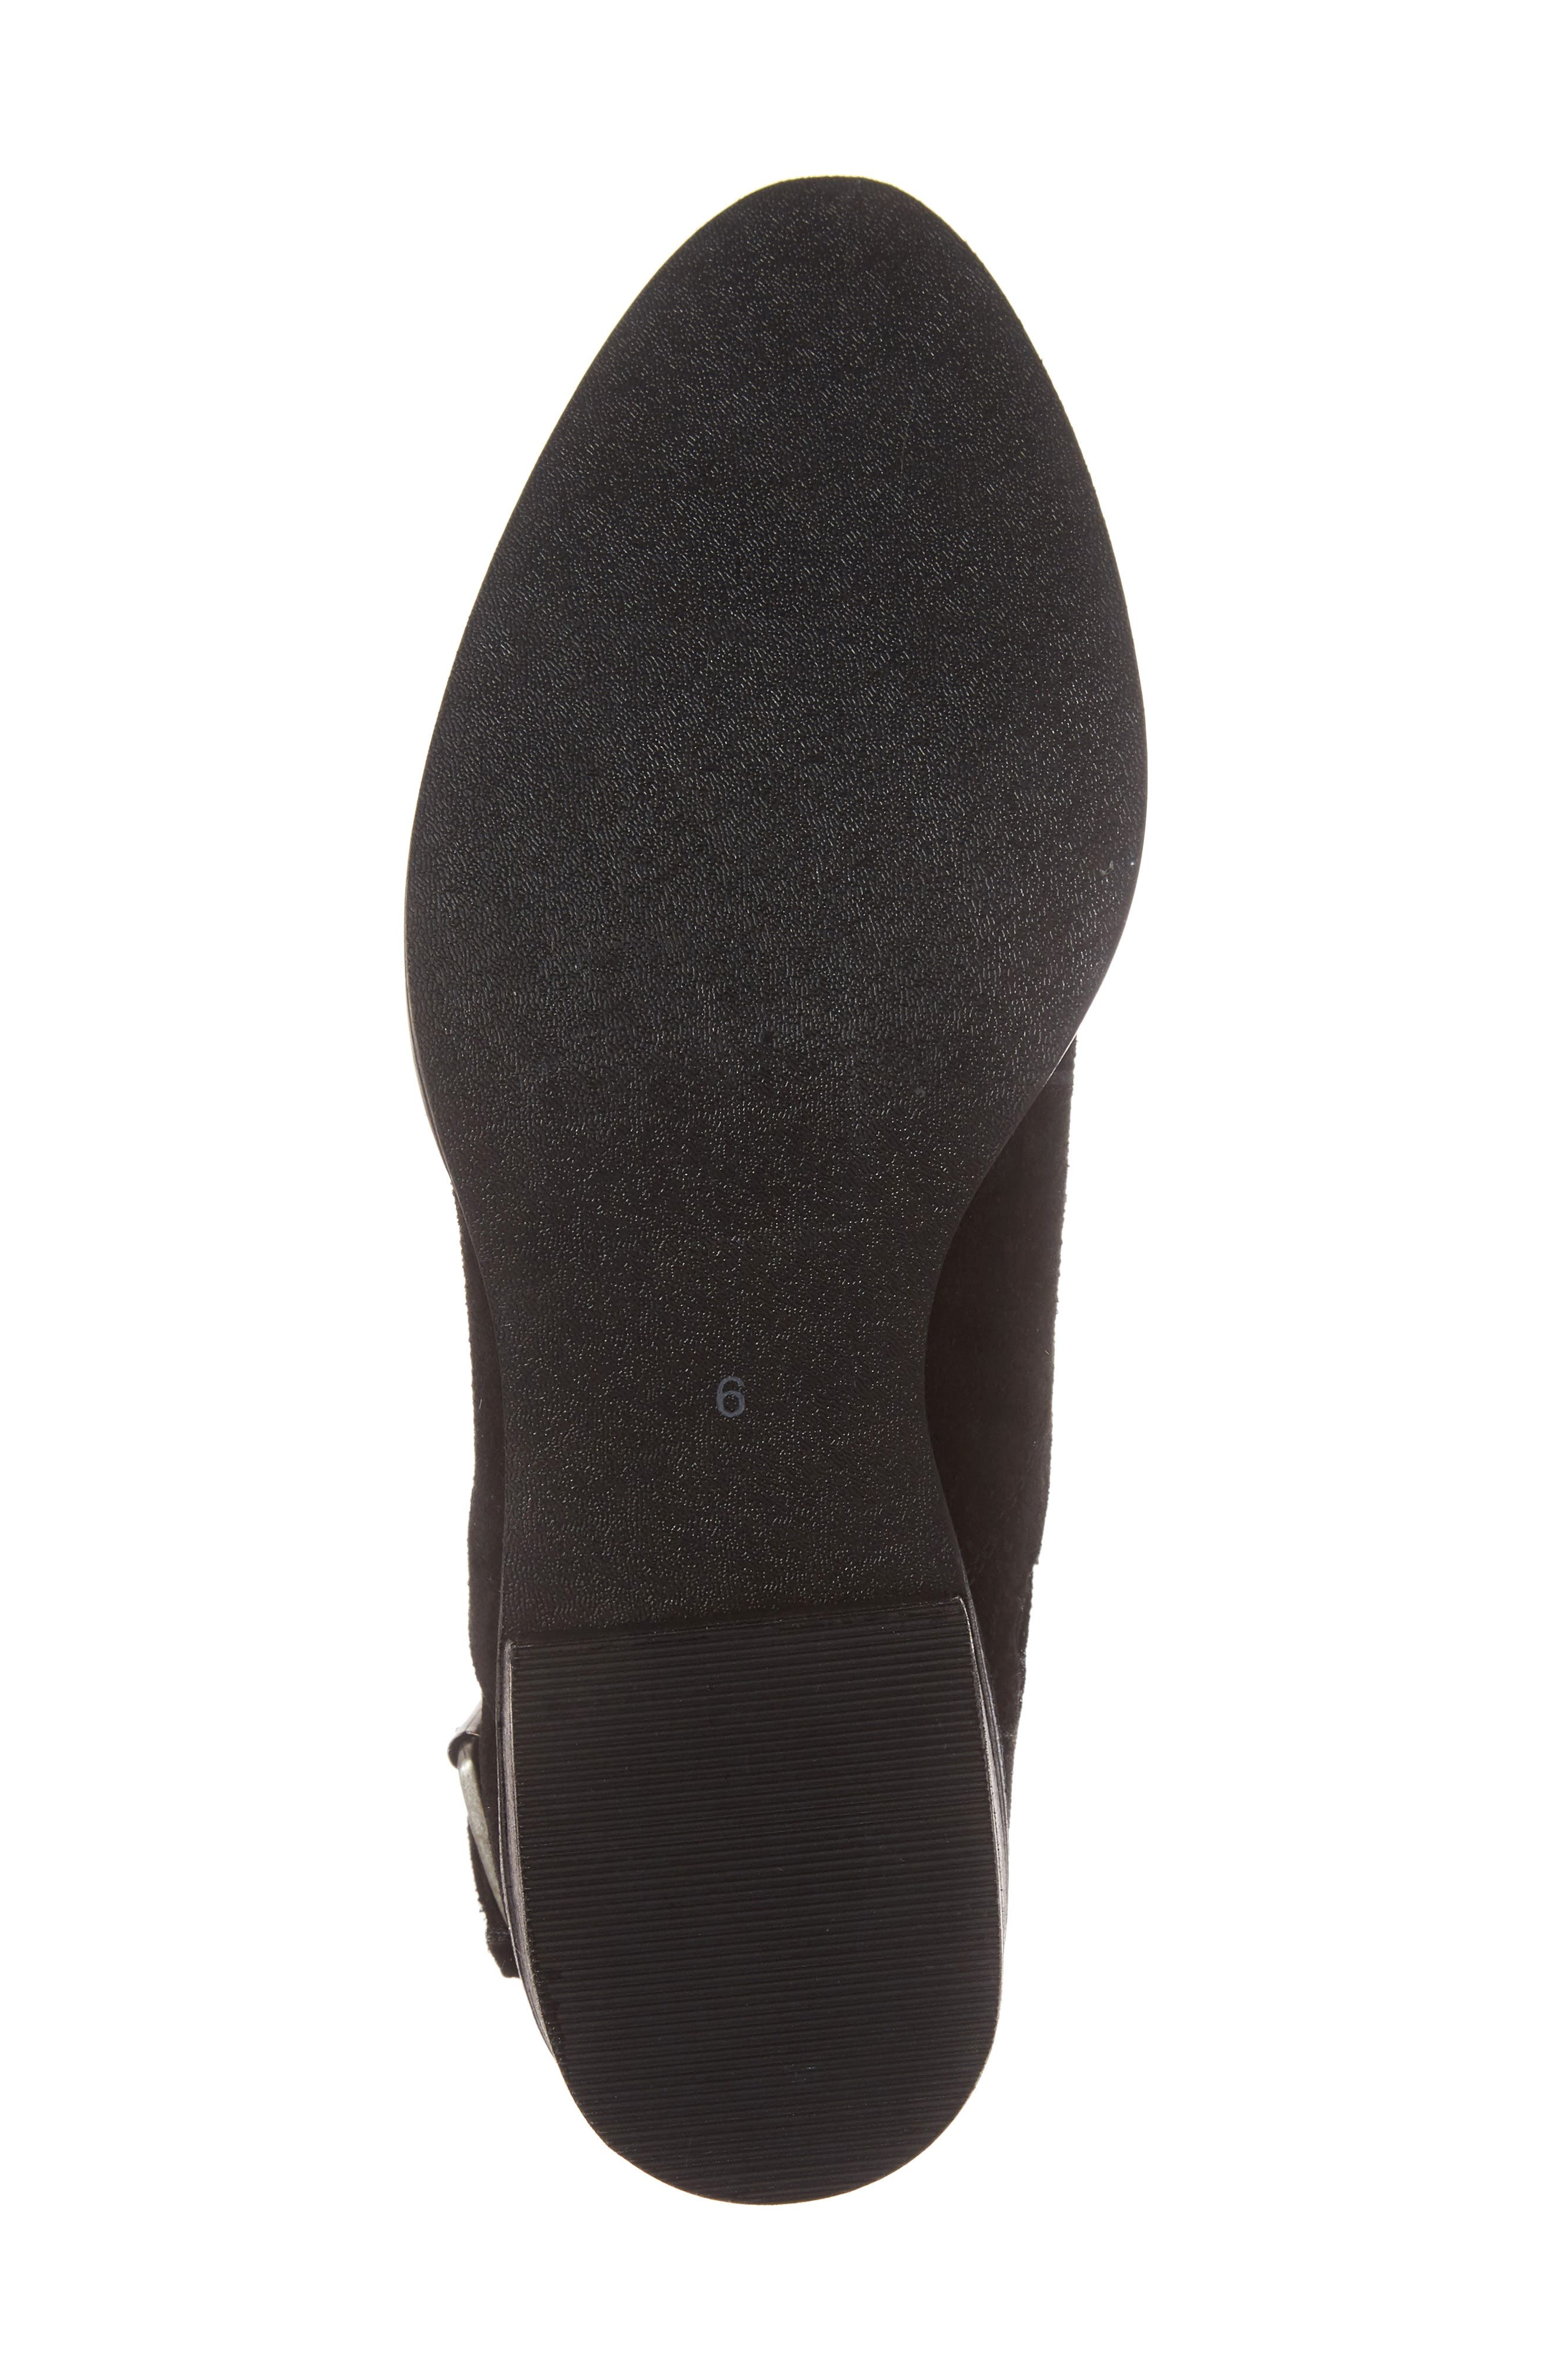 Zoey Perforated Bootie,                             Alternate thumbnail 6, color,                             001